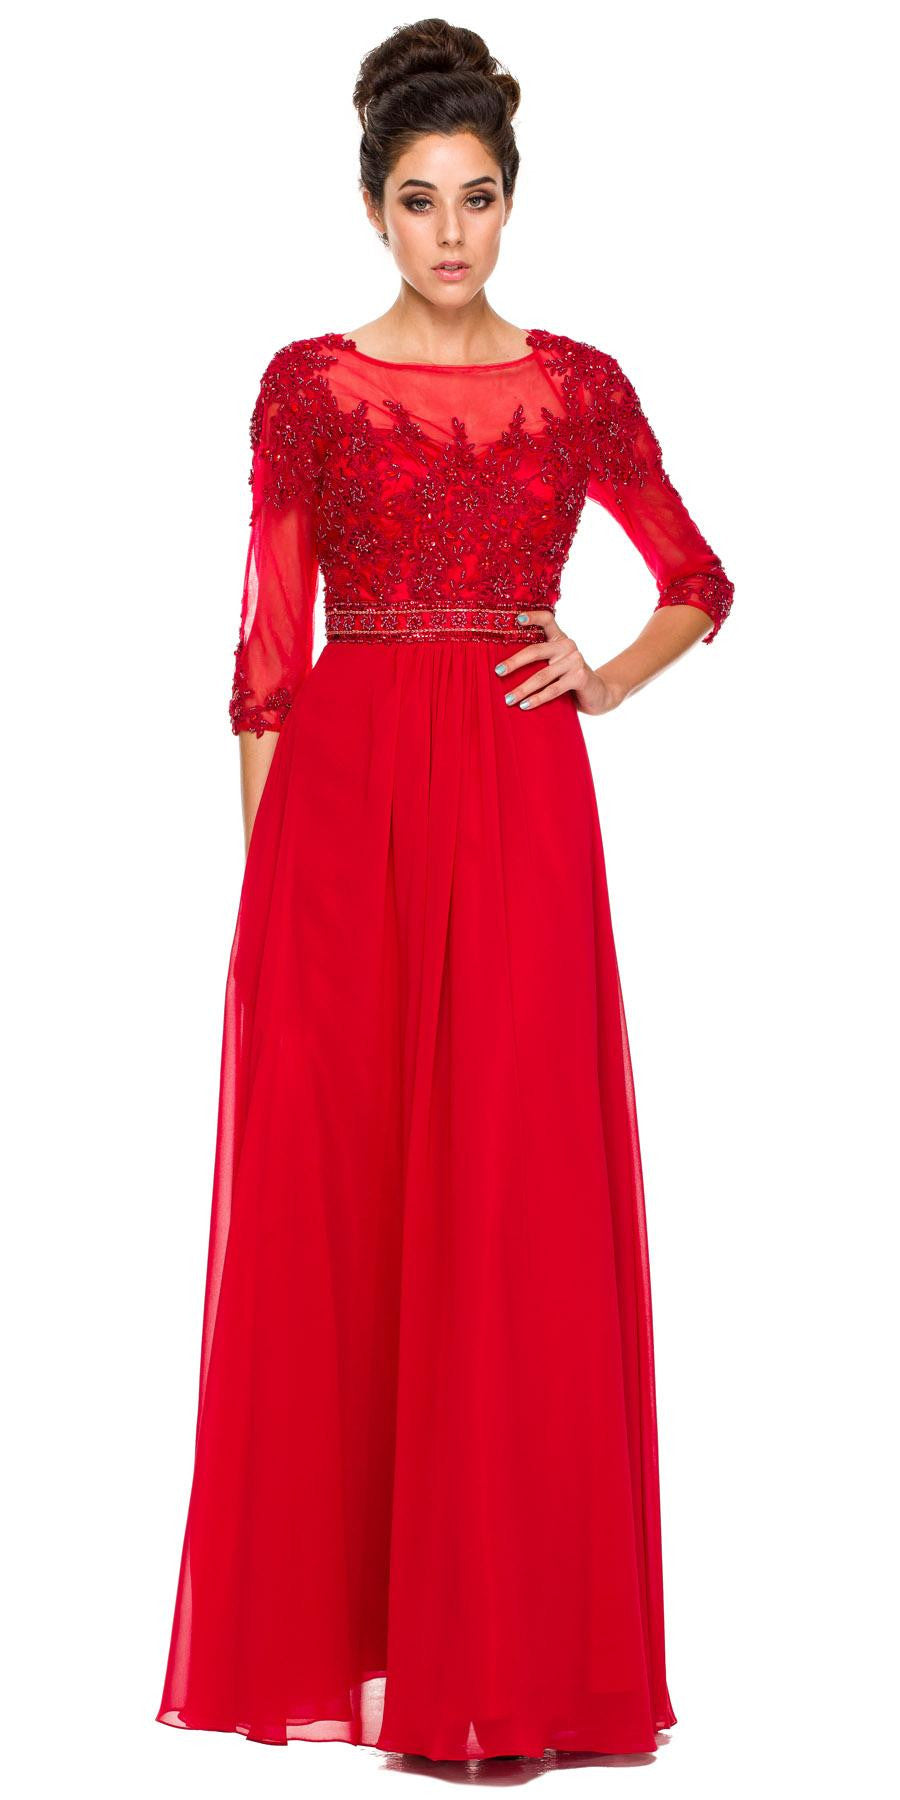 3/4 Length Sleeve Red Formal Gown Illusion Neck Embroidery